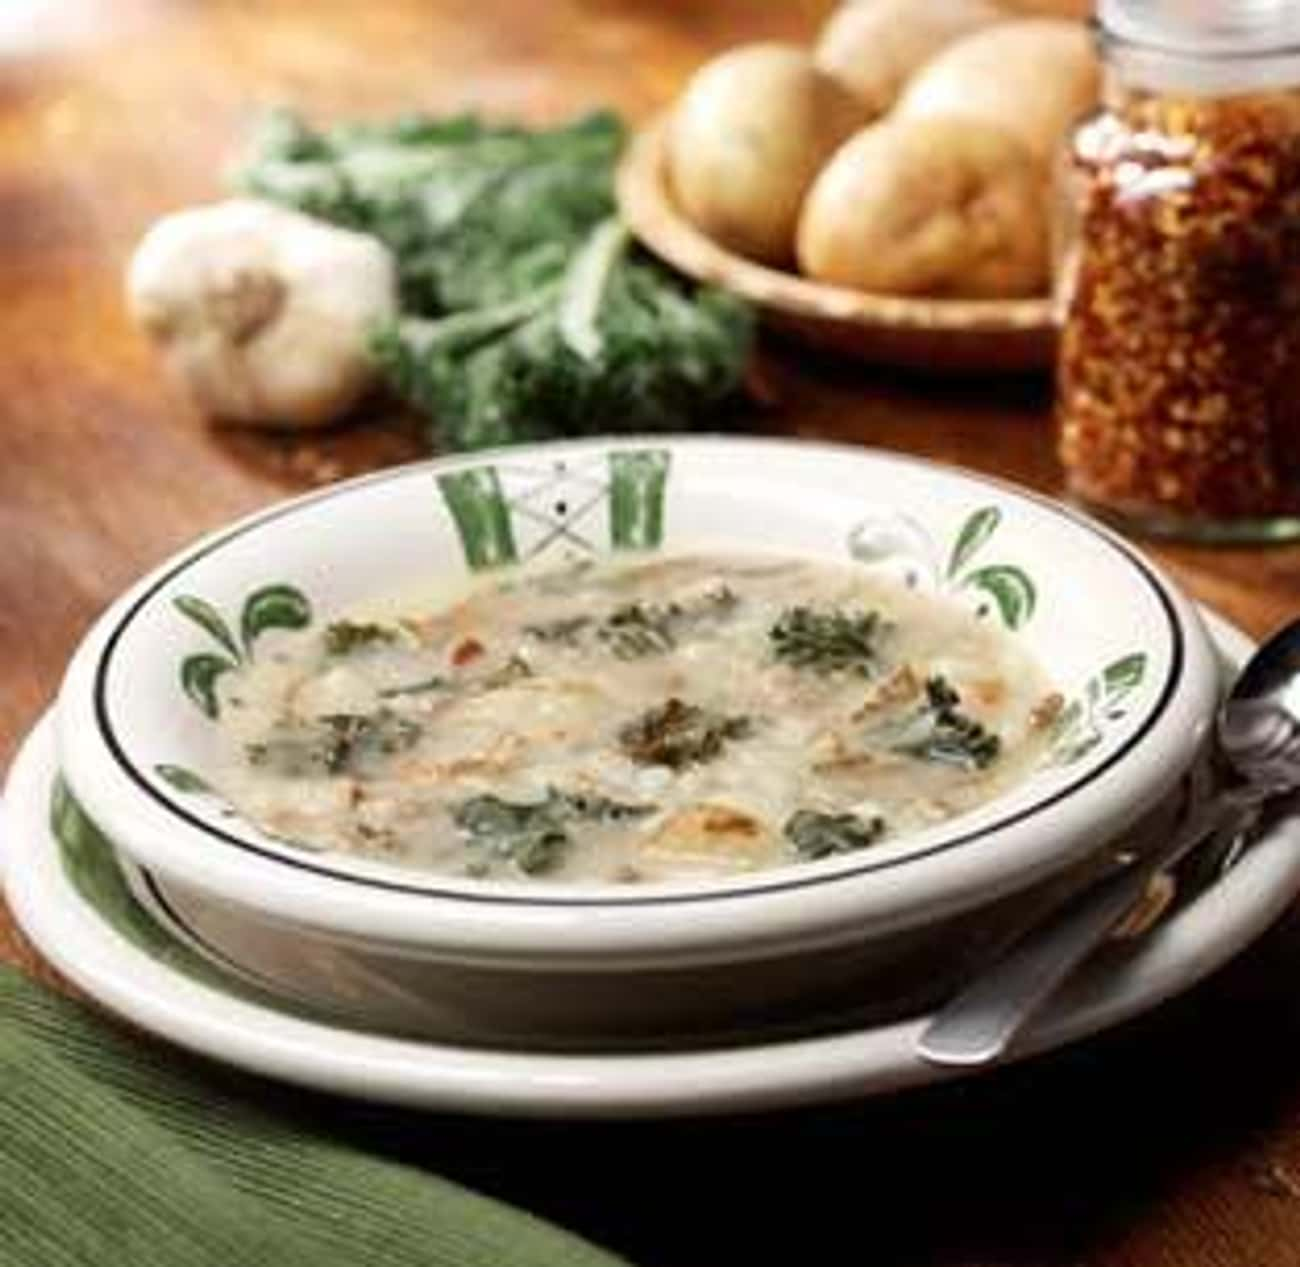 Zuppa Toscana is listed (or ranked) 2 on the list Olive Garden Recipes